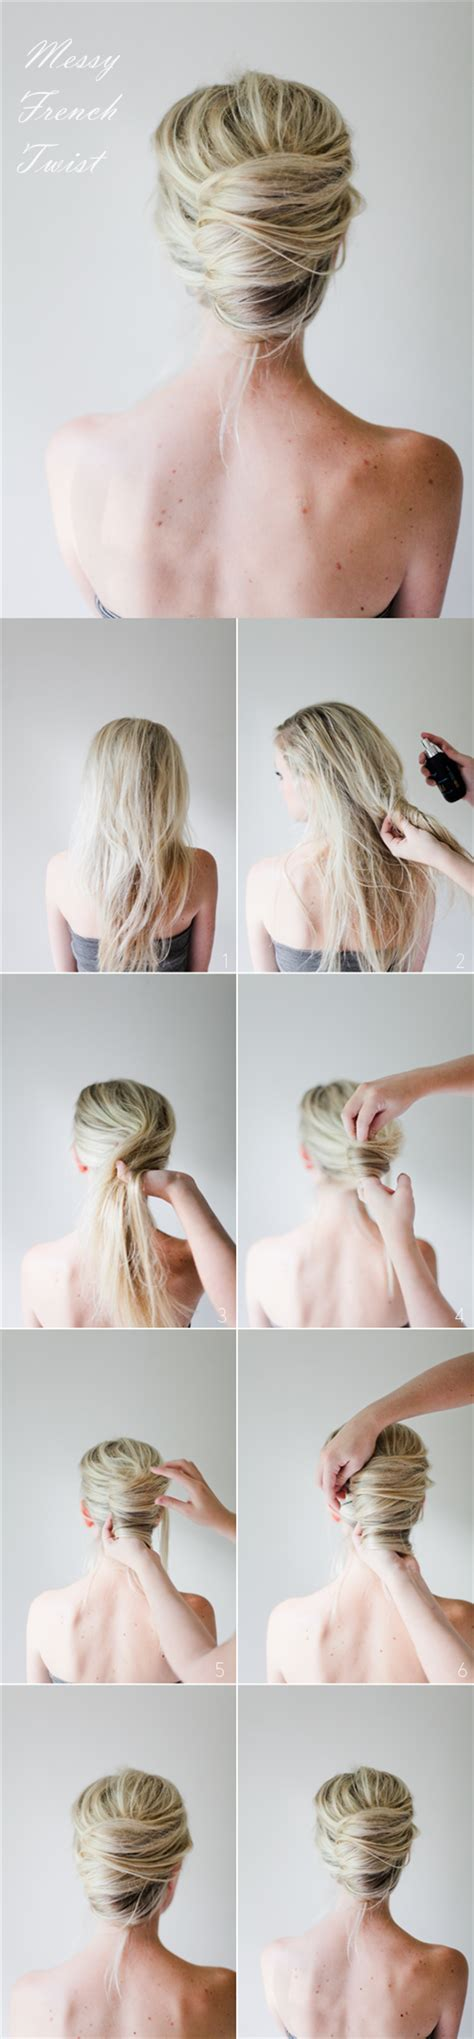 messy french twist love this for wedding hair cute simple three elegant updo hairstyles with clip in extensions